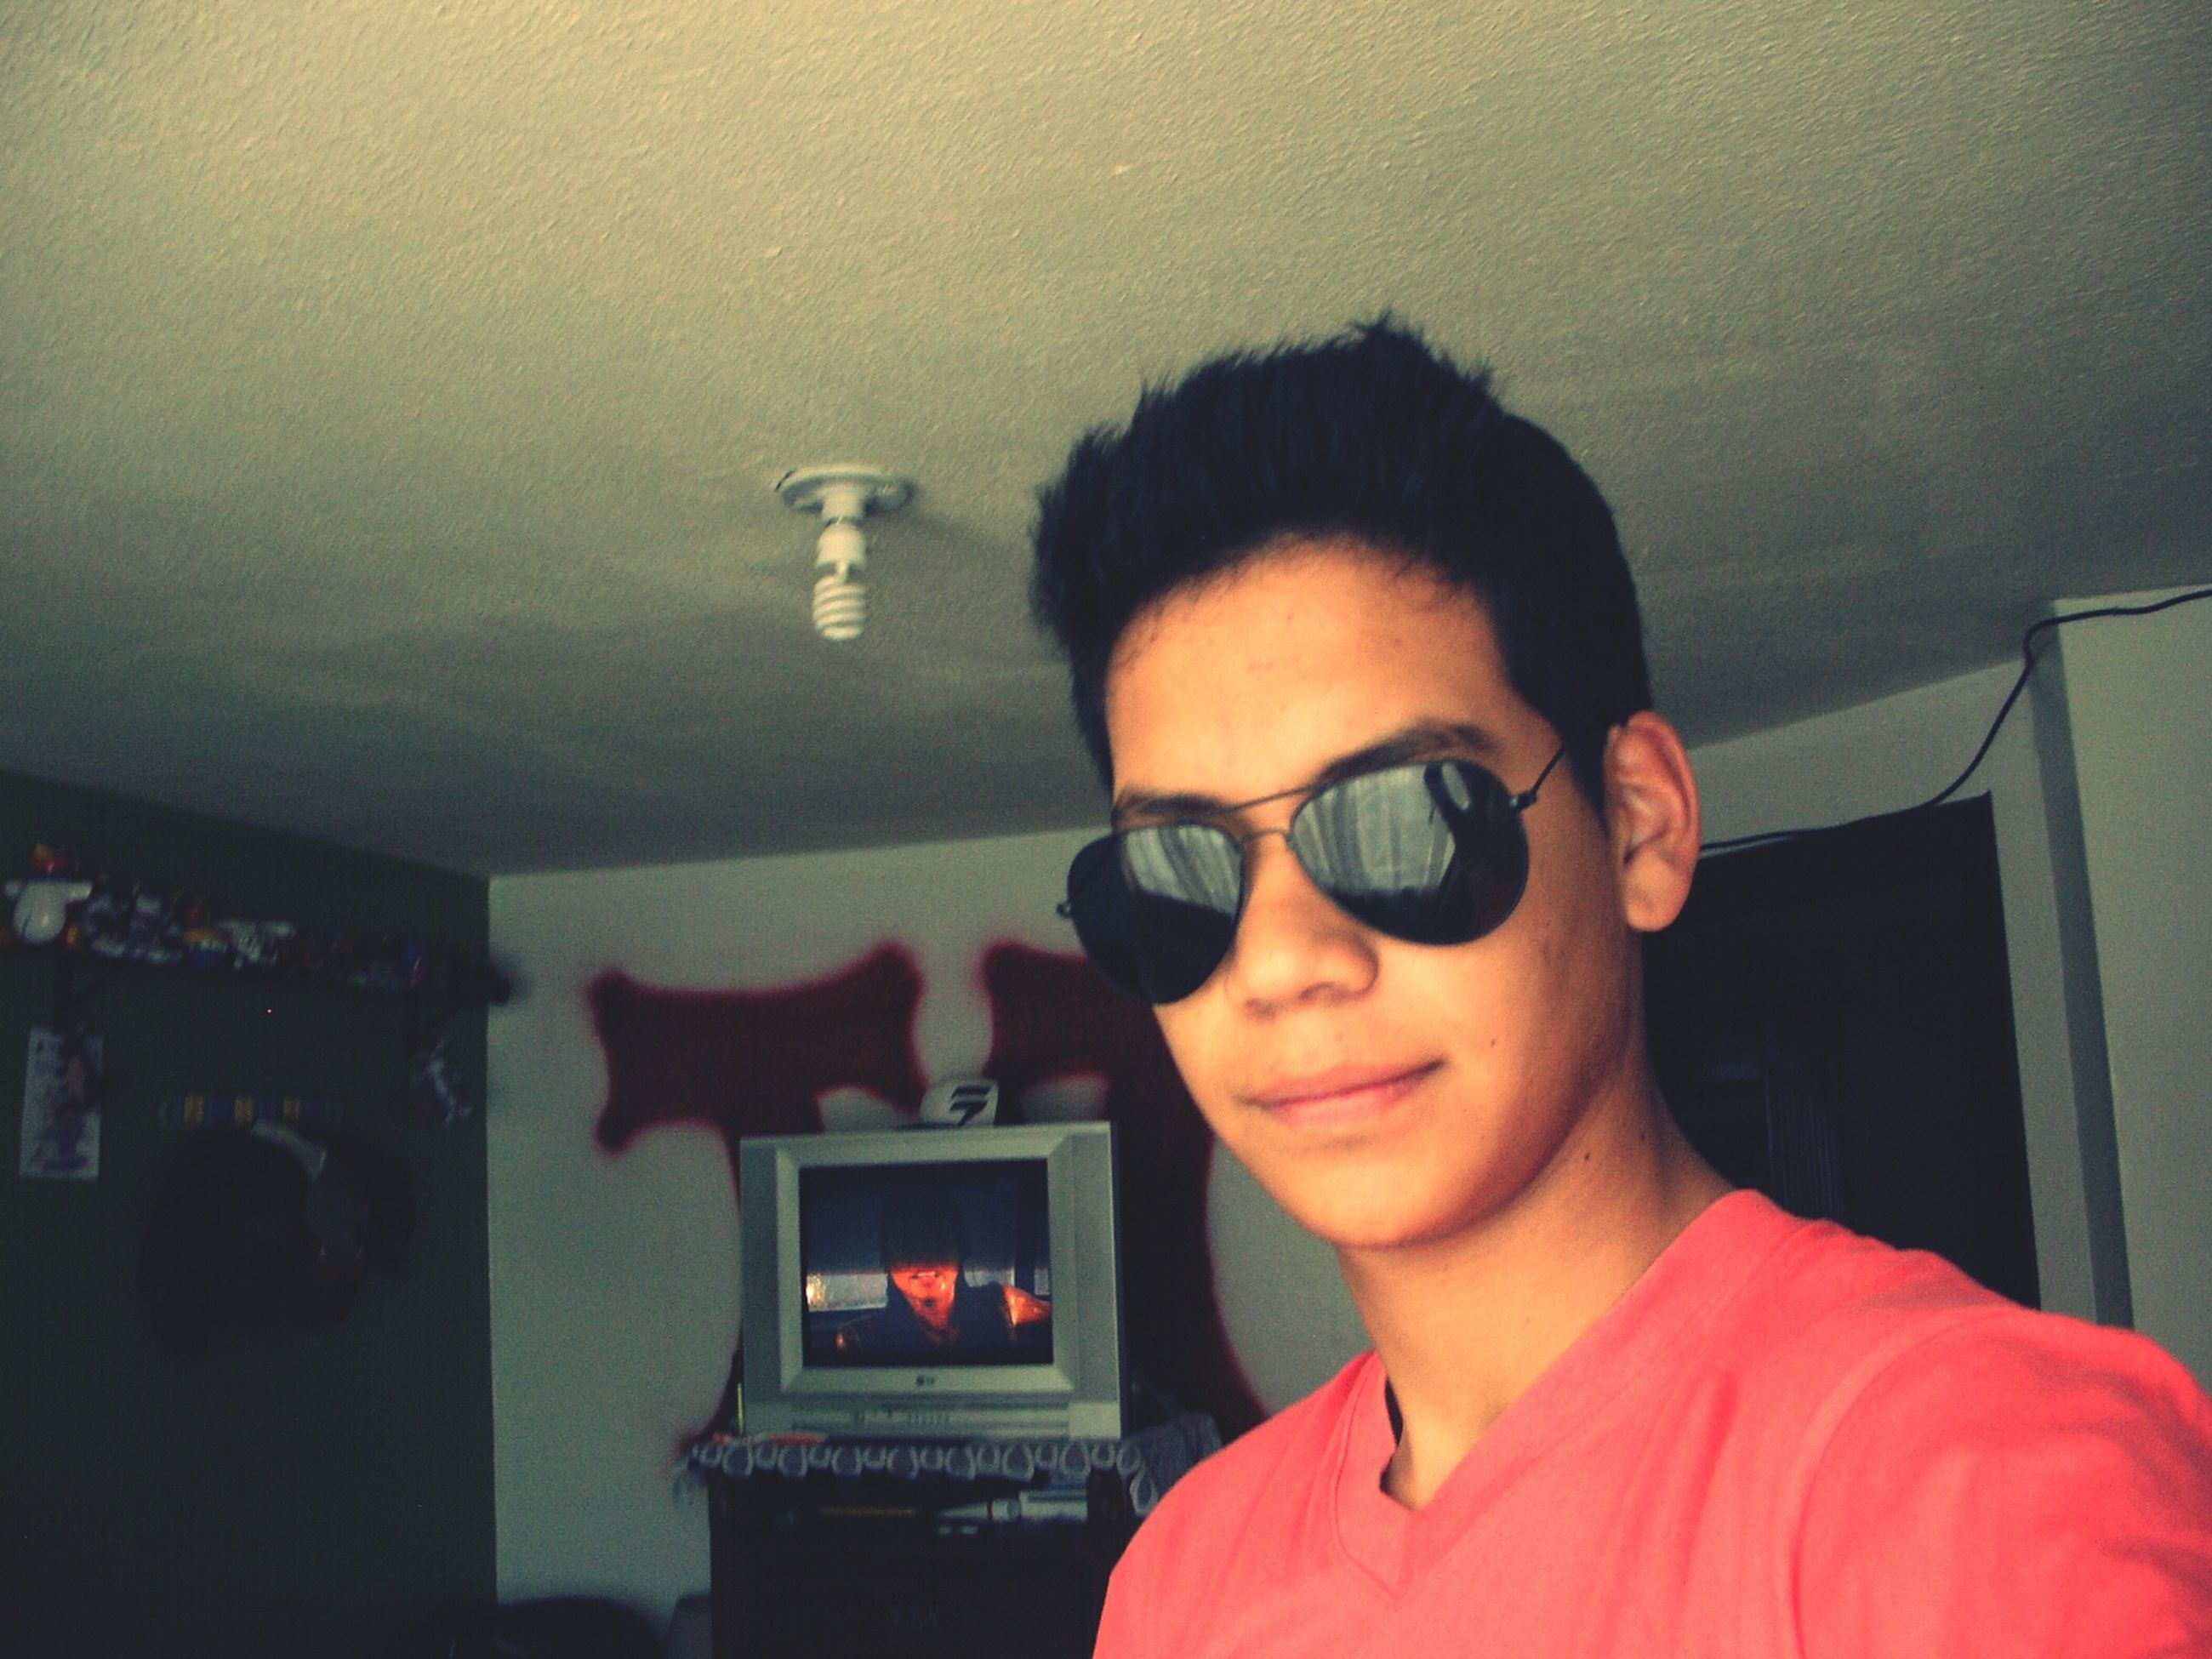 young adult, lifestyles, young men, headshot, person, portrait, looking at camera, leisure activity, front view, indoors, sunglasses, casual clothing, technology, mid adult, photography themes, mid adult men, head and shoulders